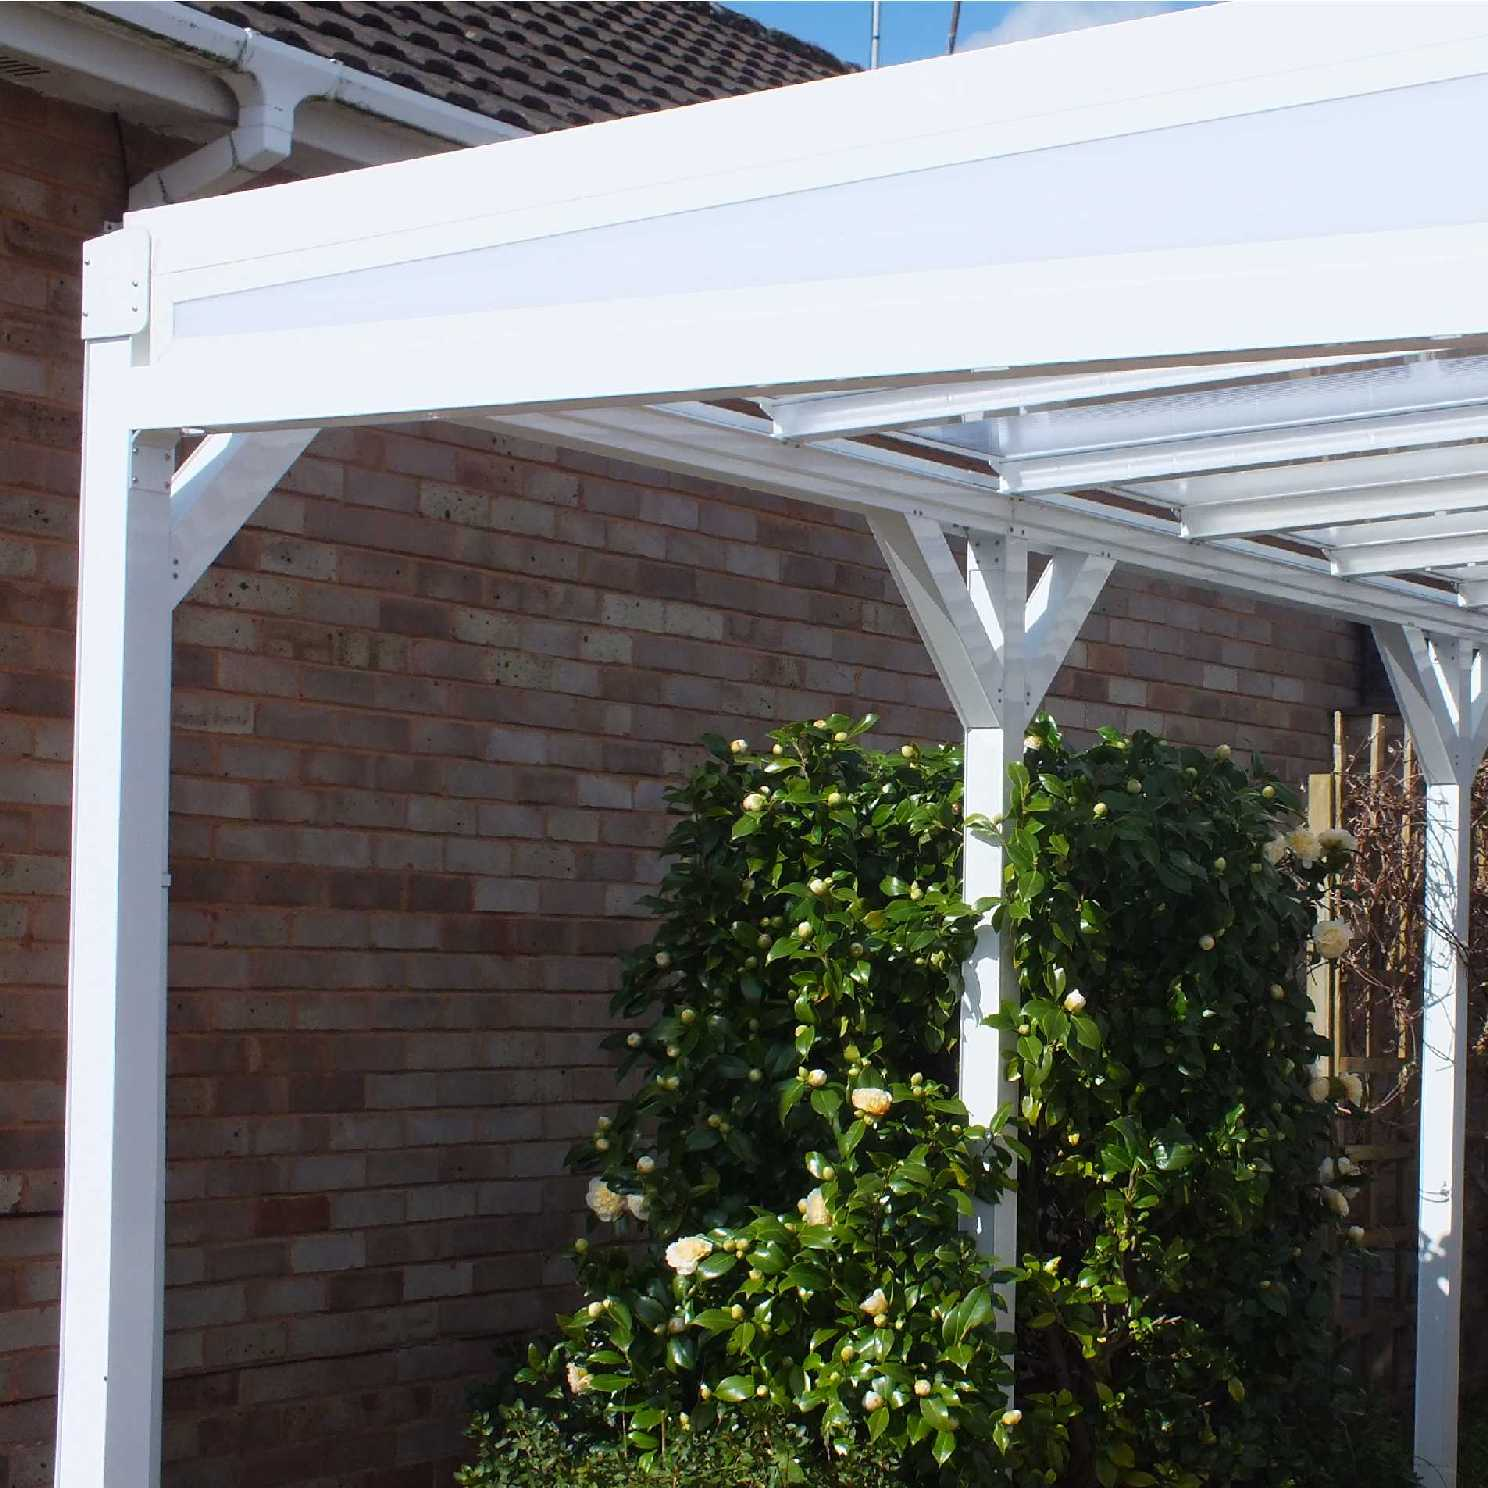 Omega Smart Lean-To Canopy with 16mm Polycarbonate Glazing - 5.2m (W) x 2.0m (P), (3) Supporting Posts from Omega Build